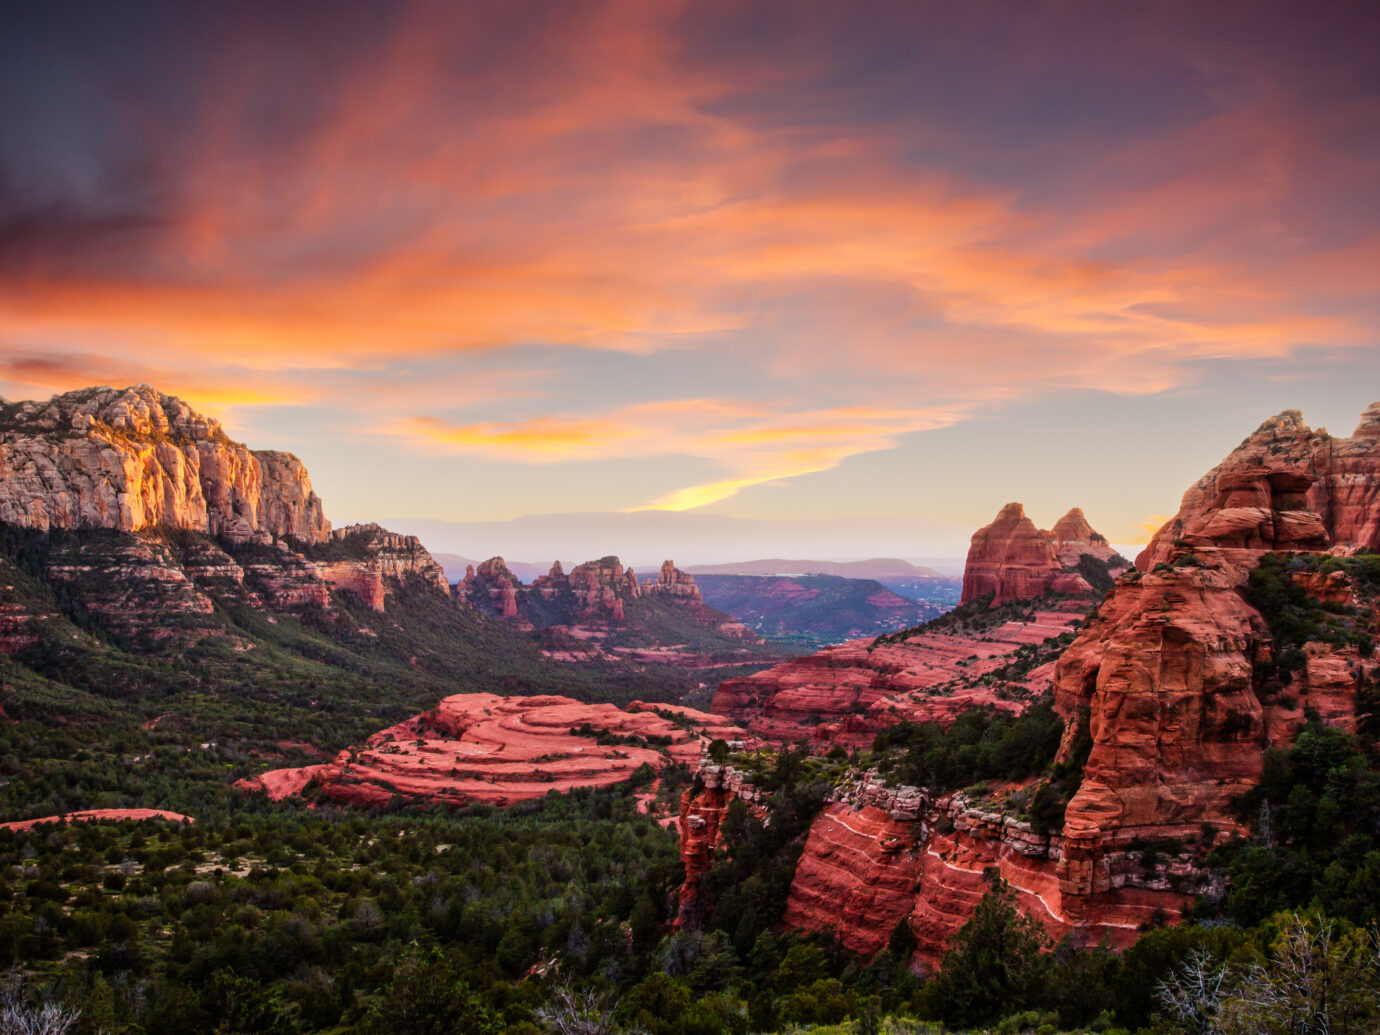 Red Rocks Sunset in Sedona Arizona